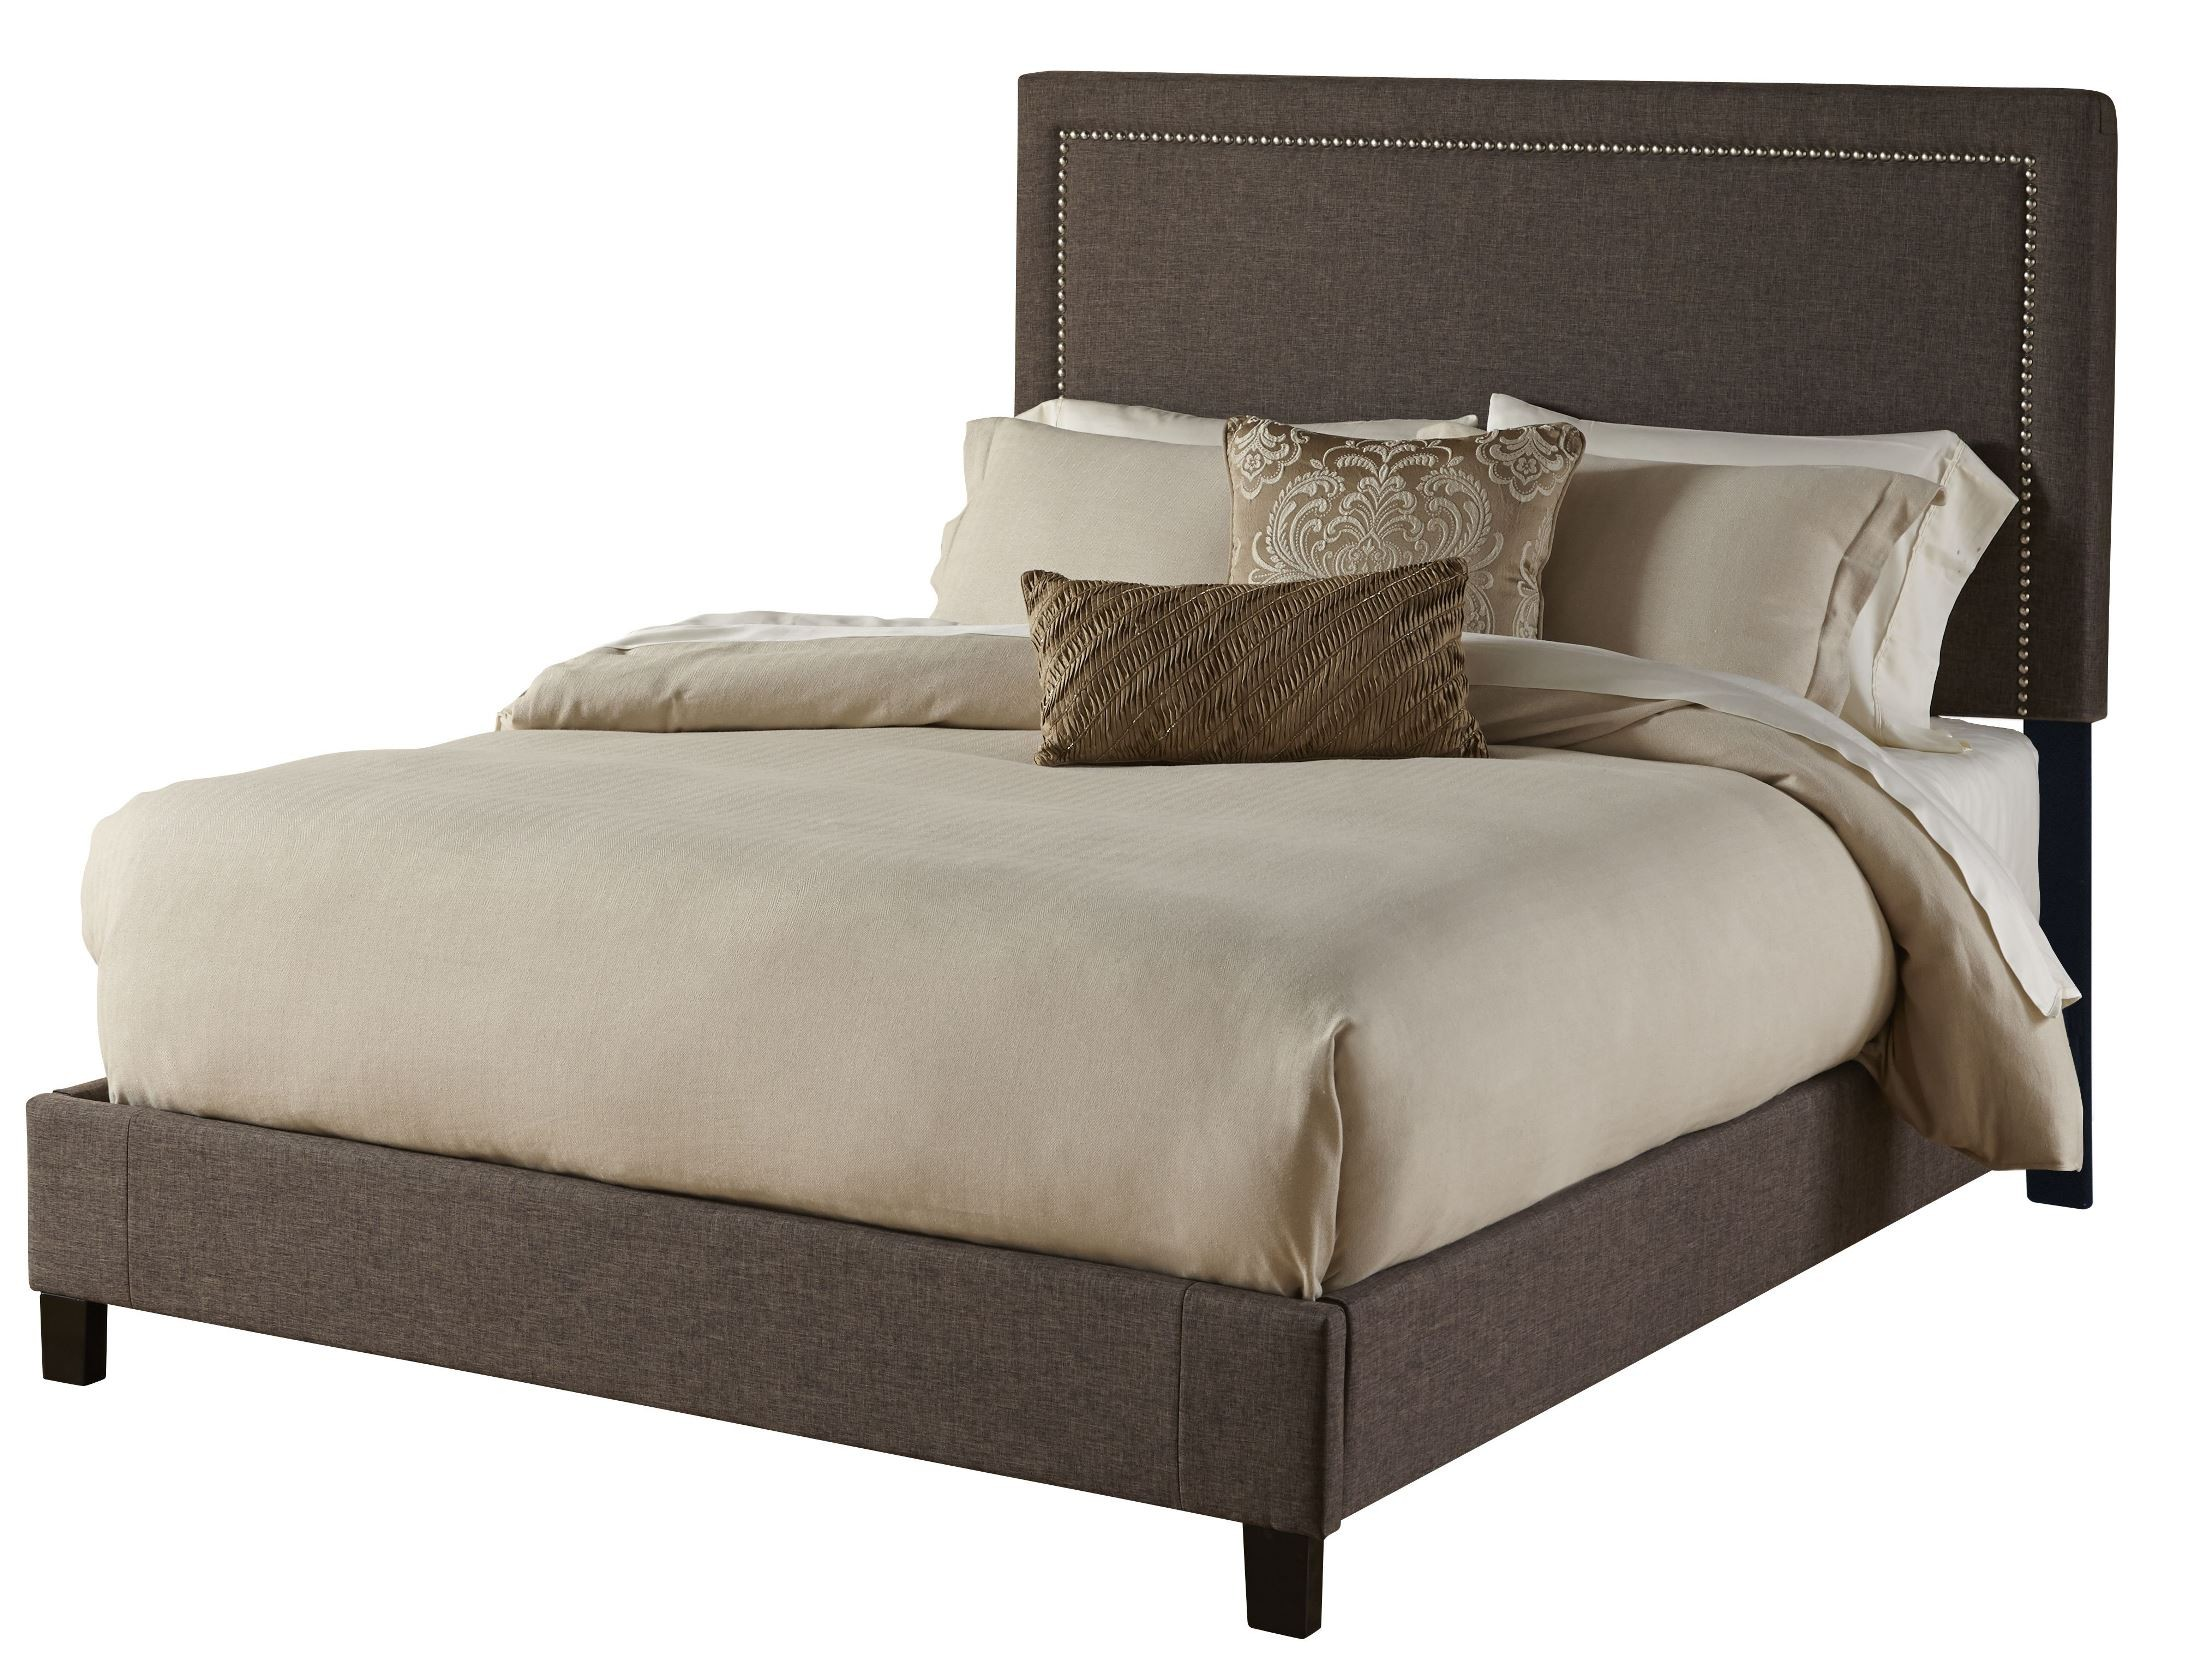 Square Nailhead King Upholstered Platform Bed Ds 2291 270